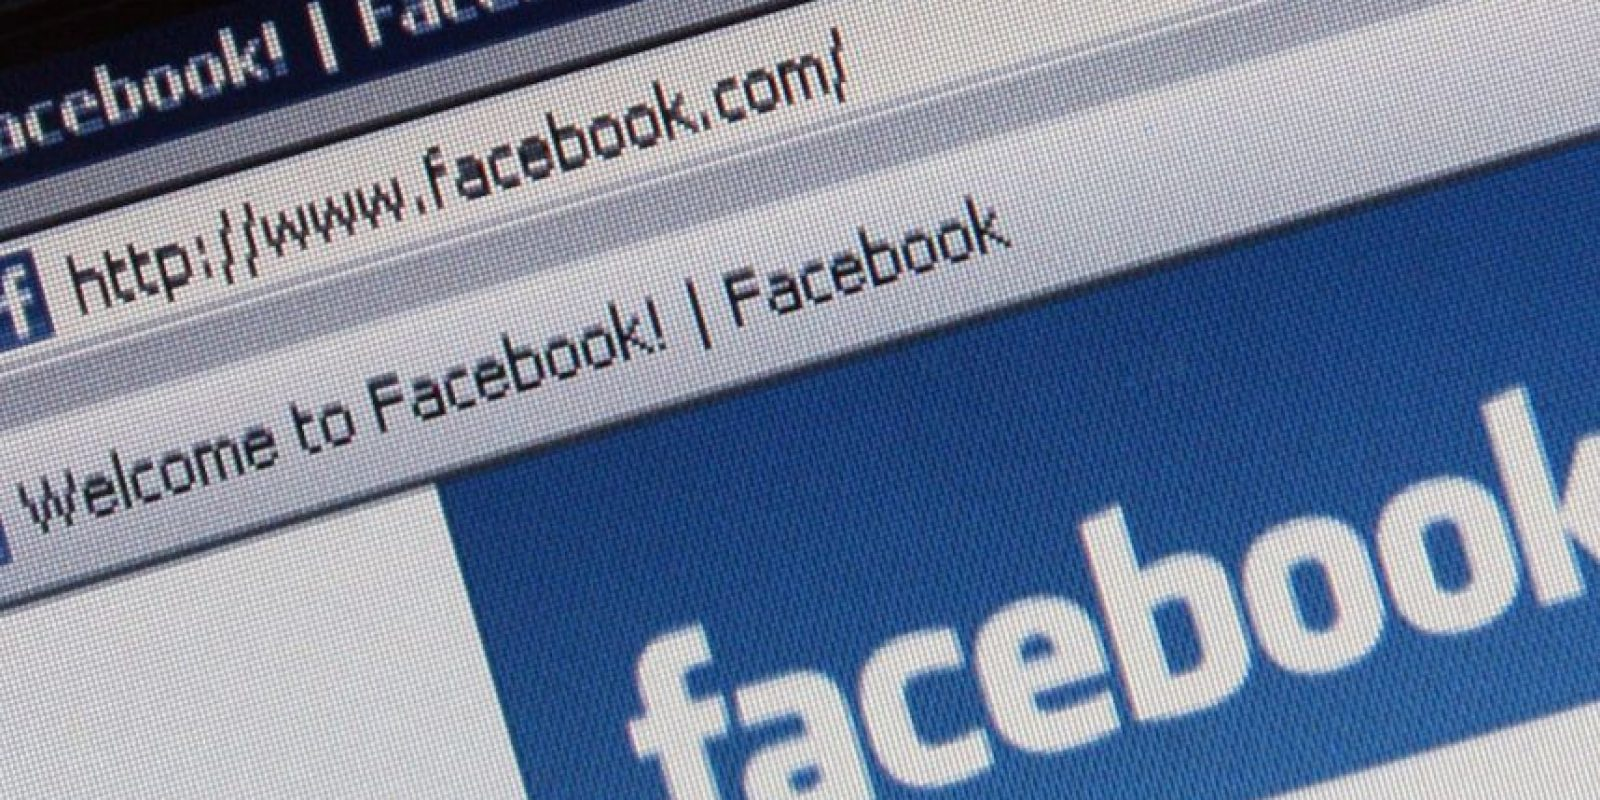 Así pueden evitar ser infectados por virus en Facebook. Foto: Getty Images